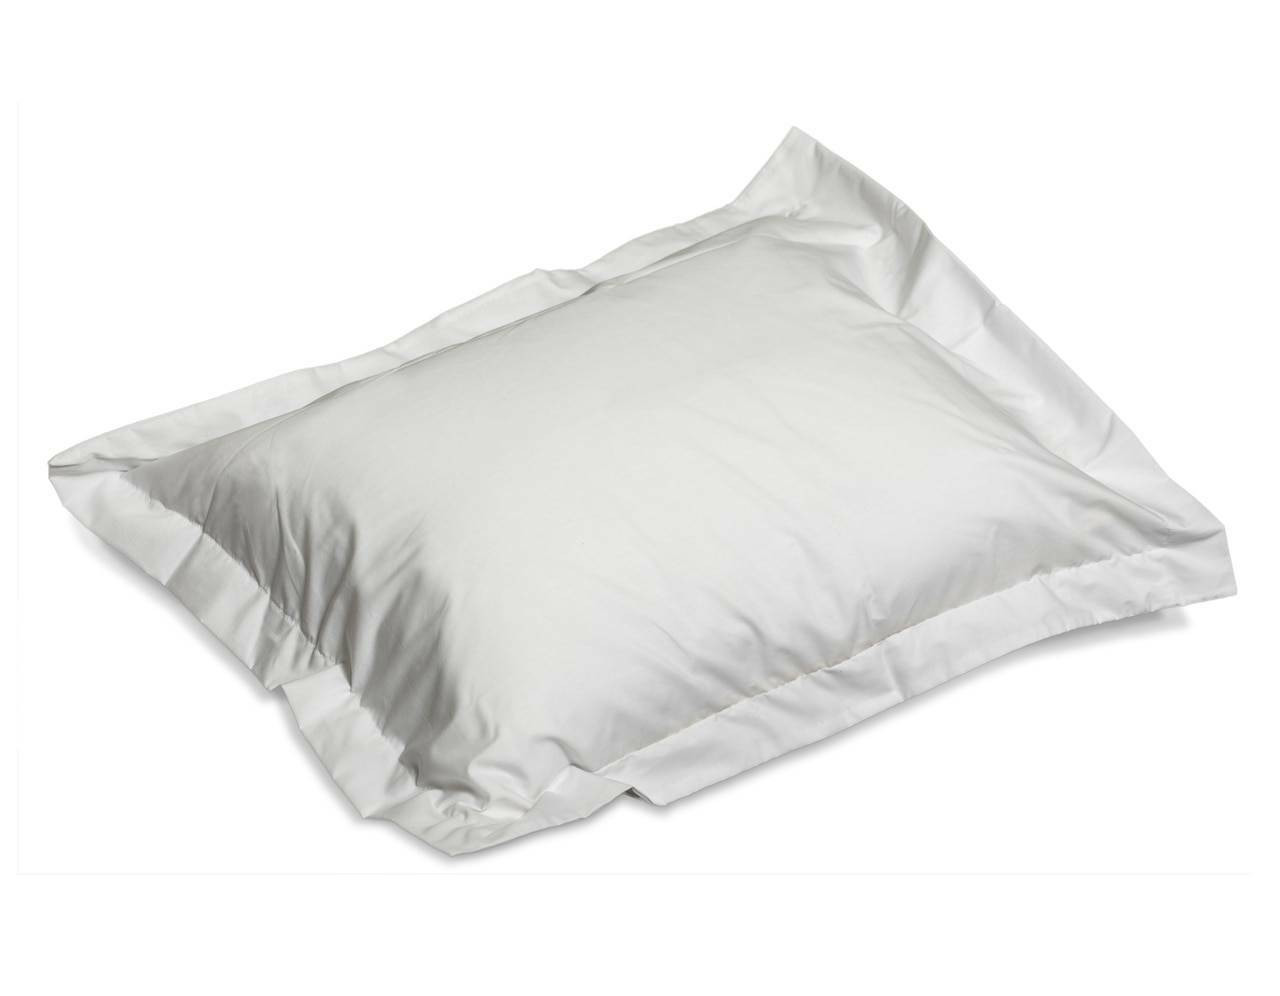 THOMASTON MILLS Thomaston Mills T200 Bedding - ALL Linen, Colors and Sizes